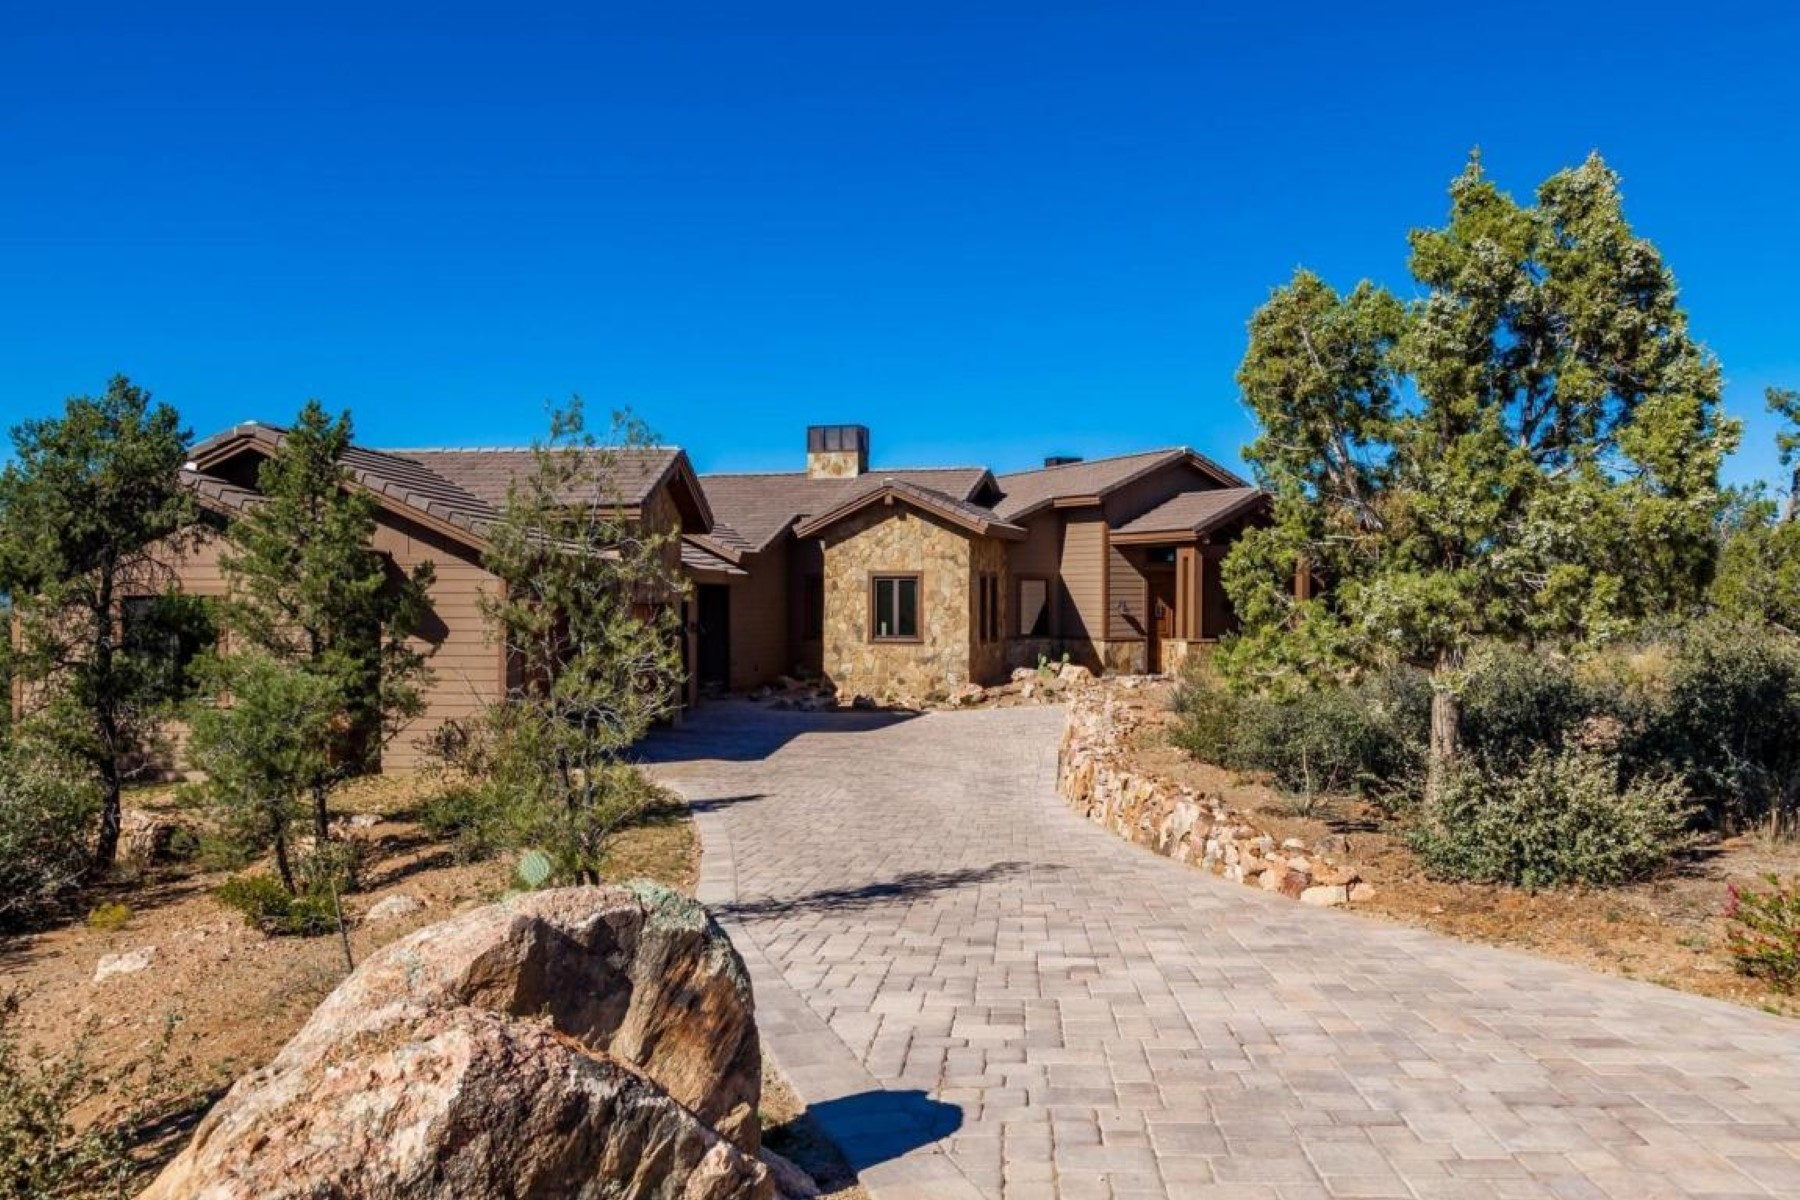 Single Family Home for Sale at Almost new custom home on a 1.42 acre corner lot 12680 W Cooper Morgan Trl Prescott, Arizona, 86305 United States